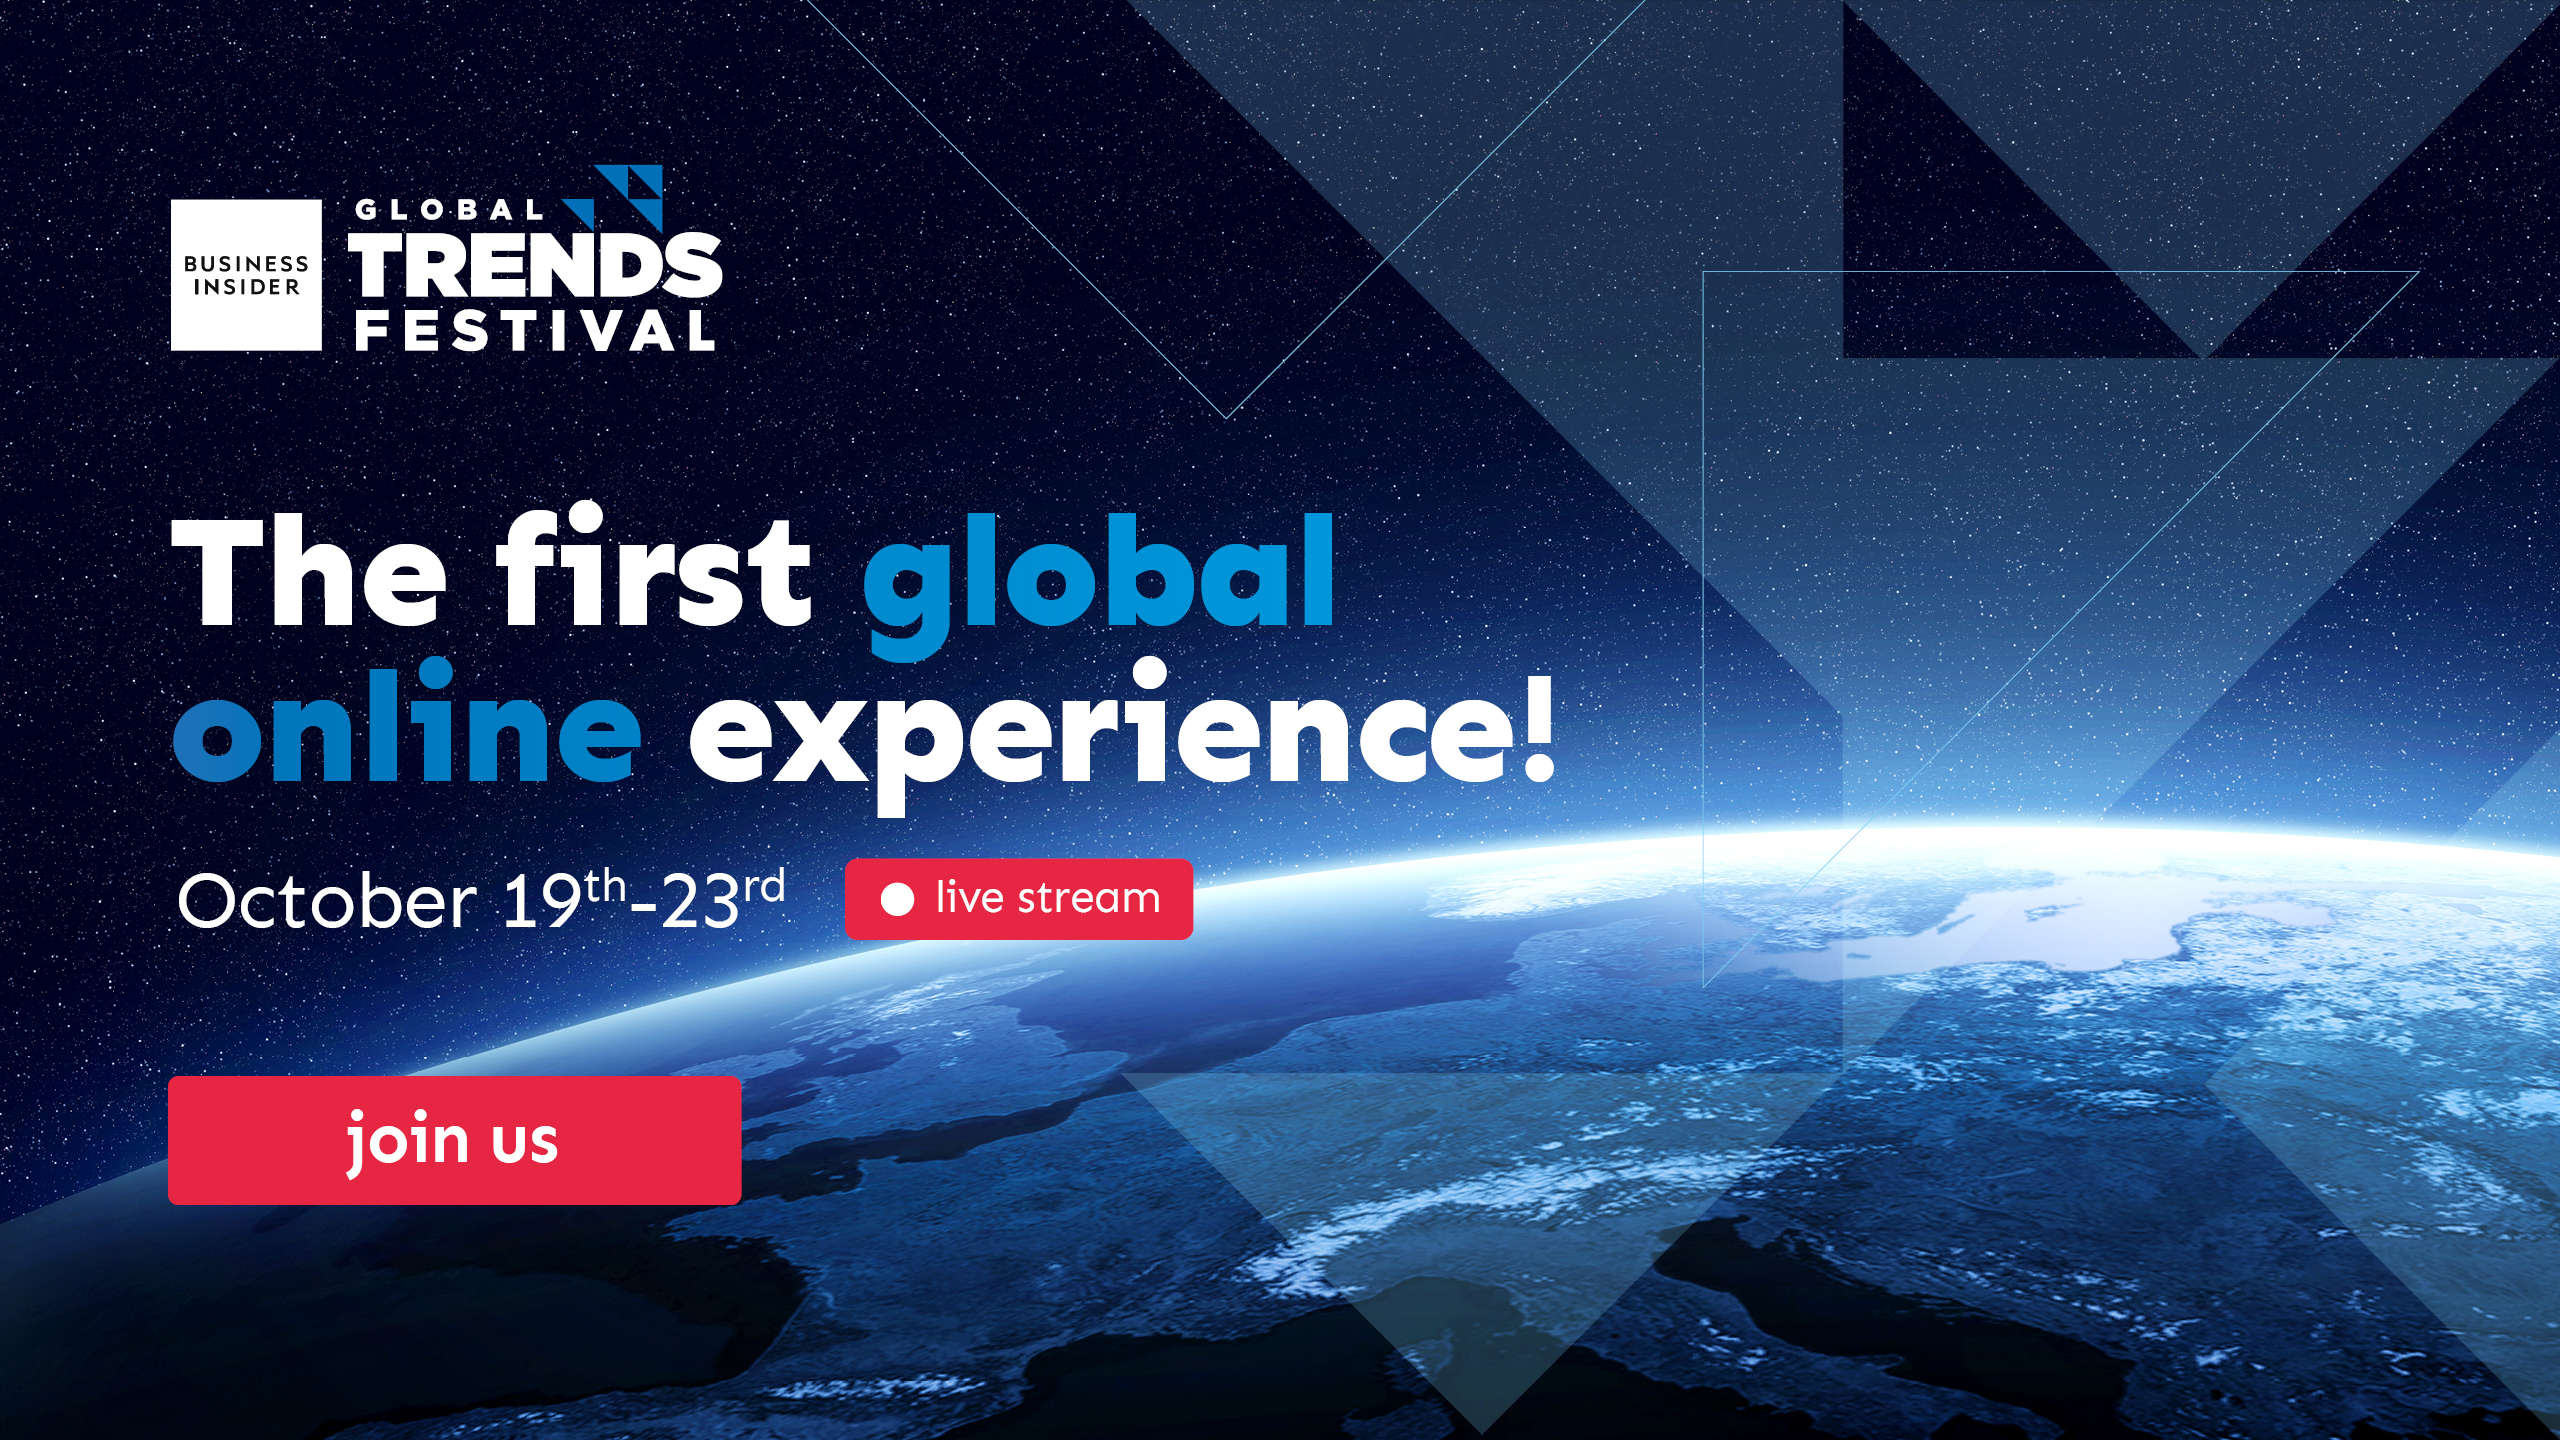 The leadership from Asia, and India in particular, will be at the heart of Global Trends Festival 2020